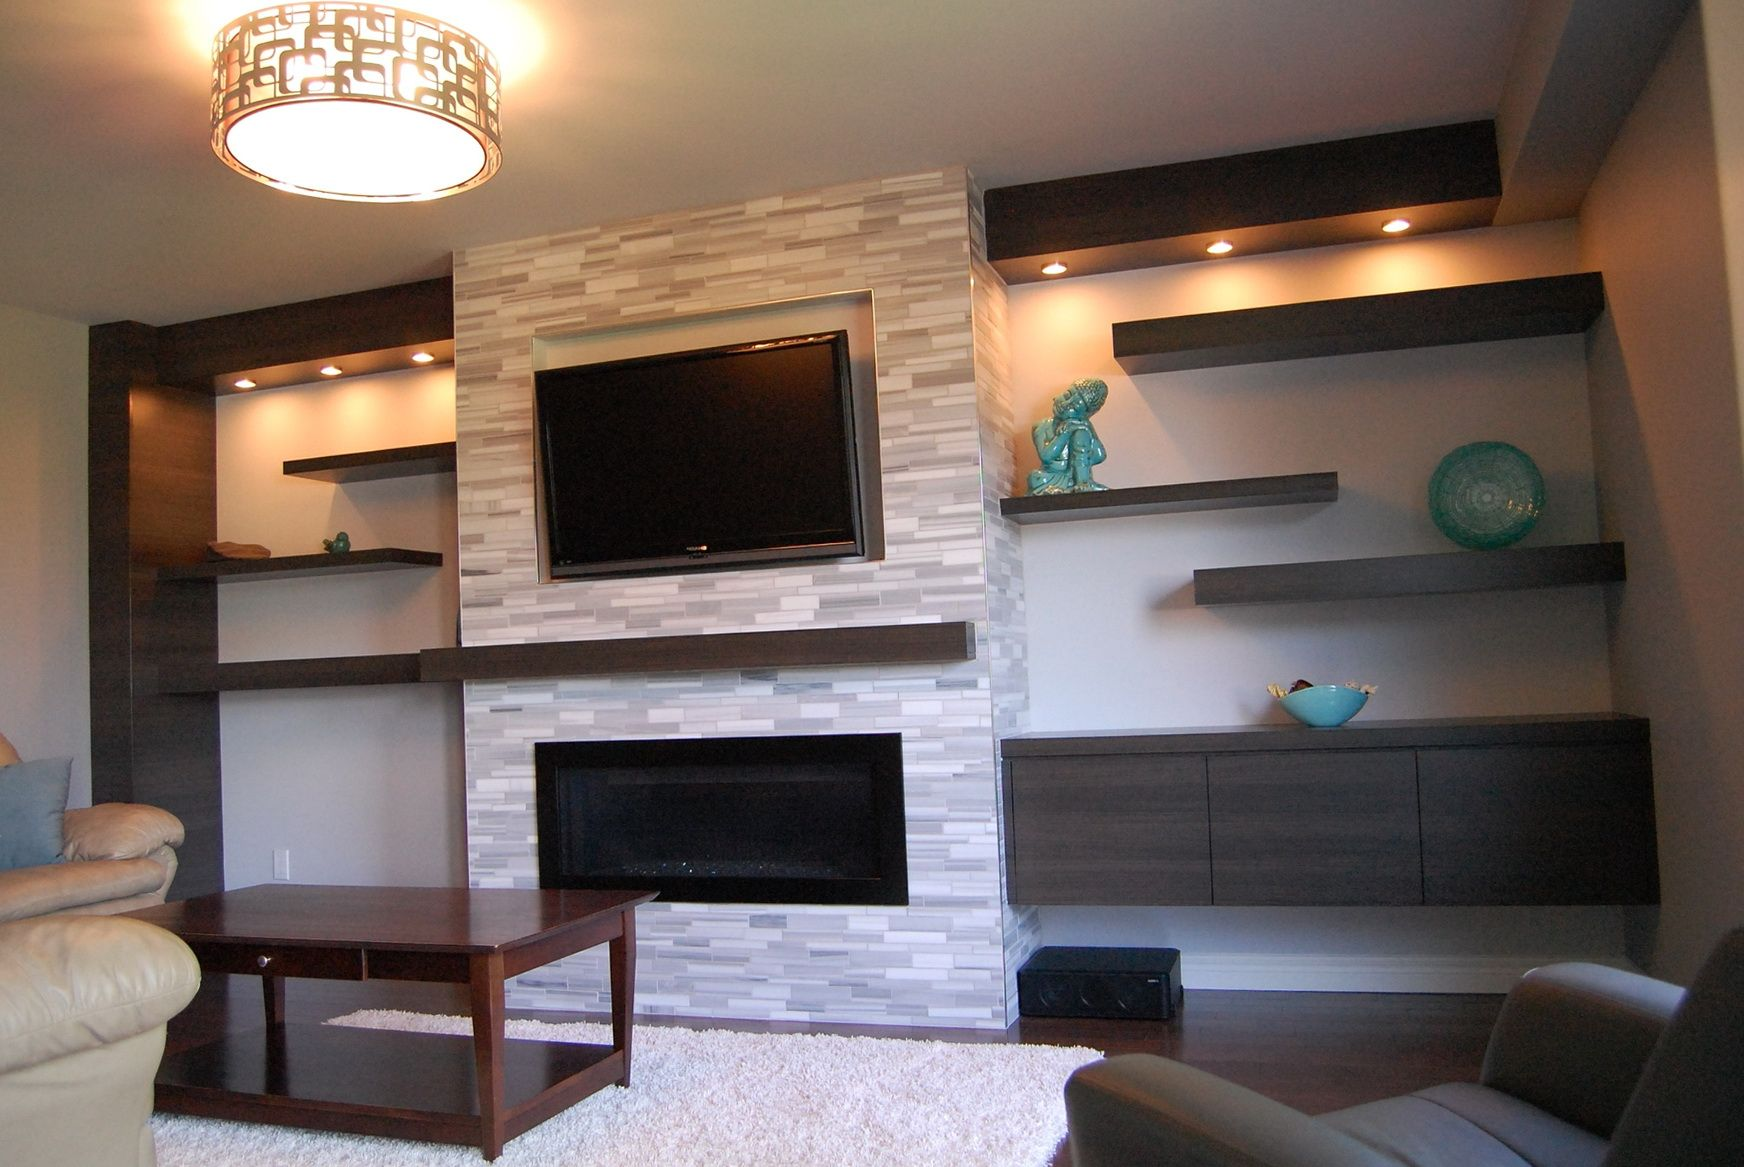 Wall mount tv over fireplace ideas fireplaces for Family room tv wall ideas